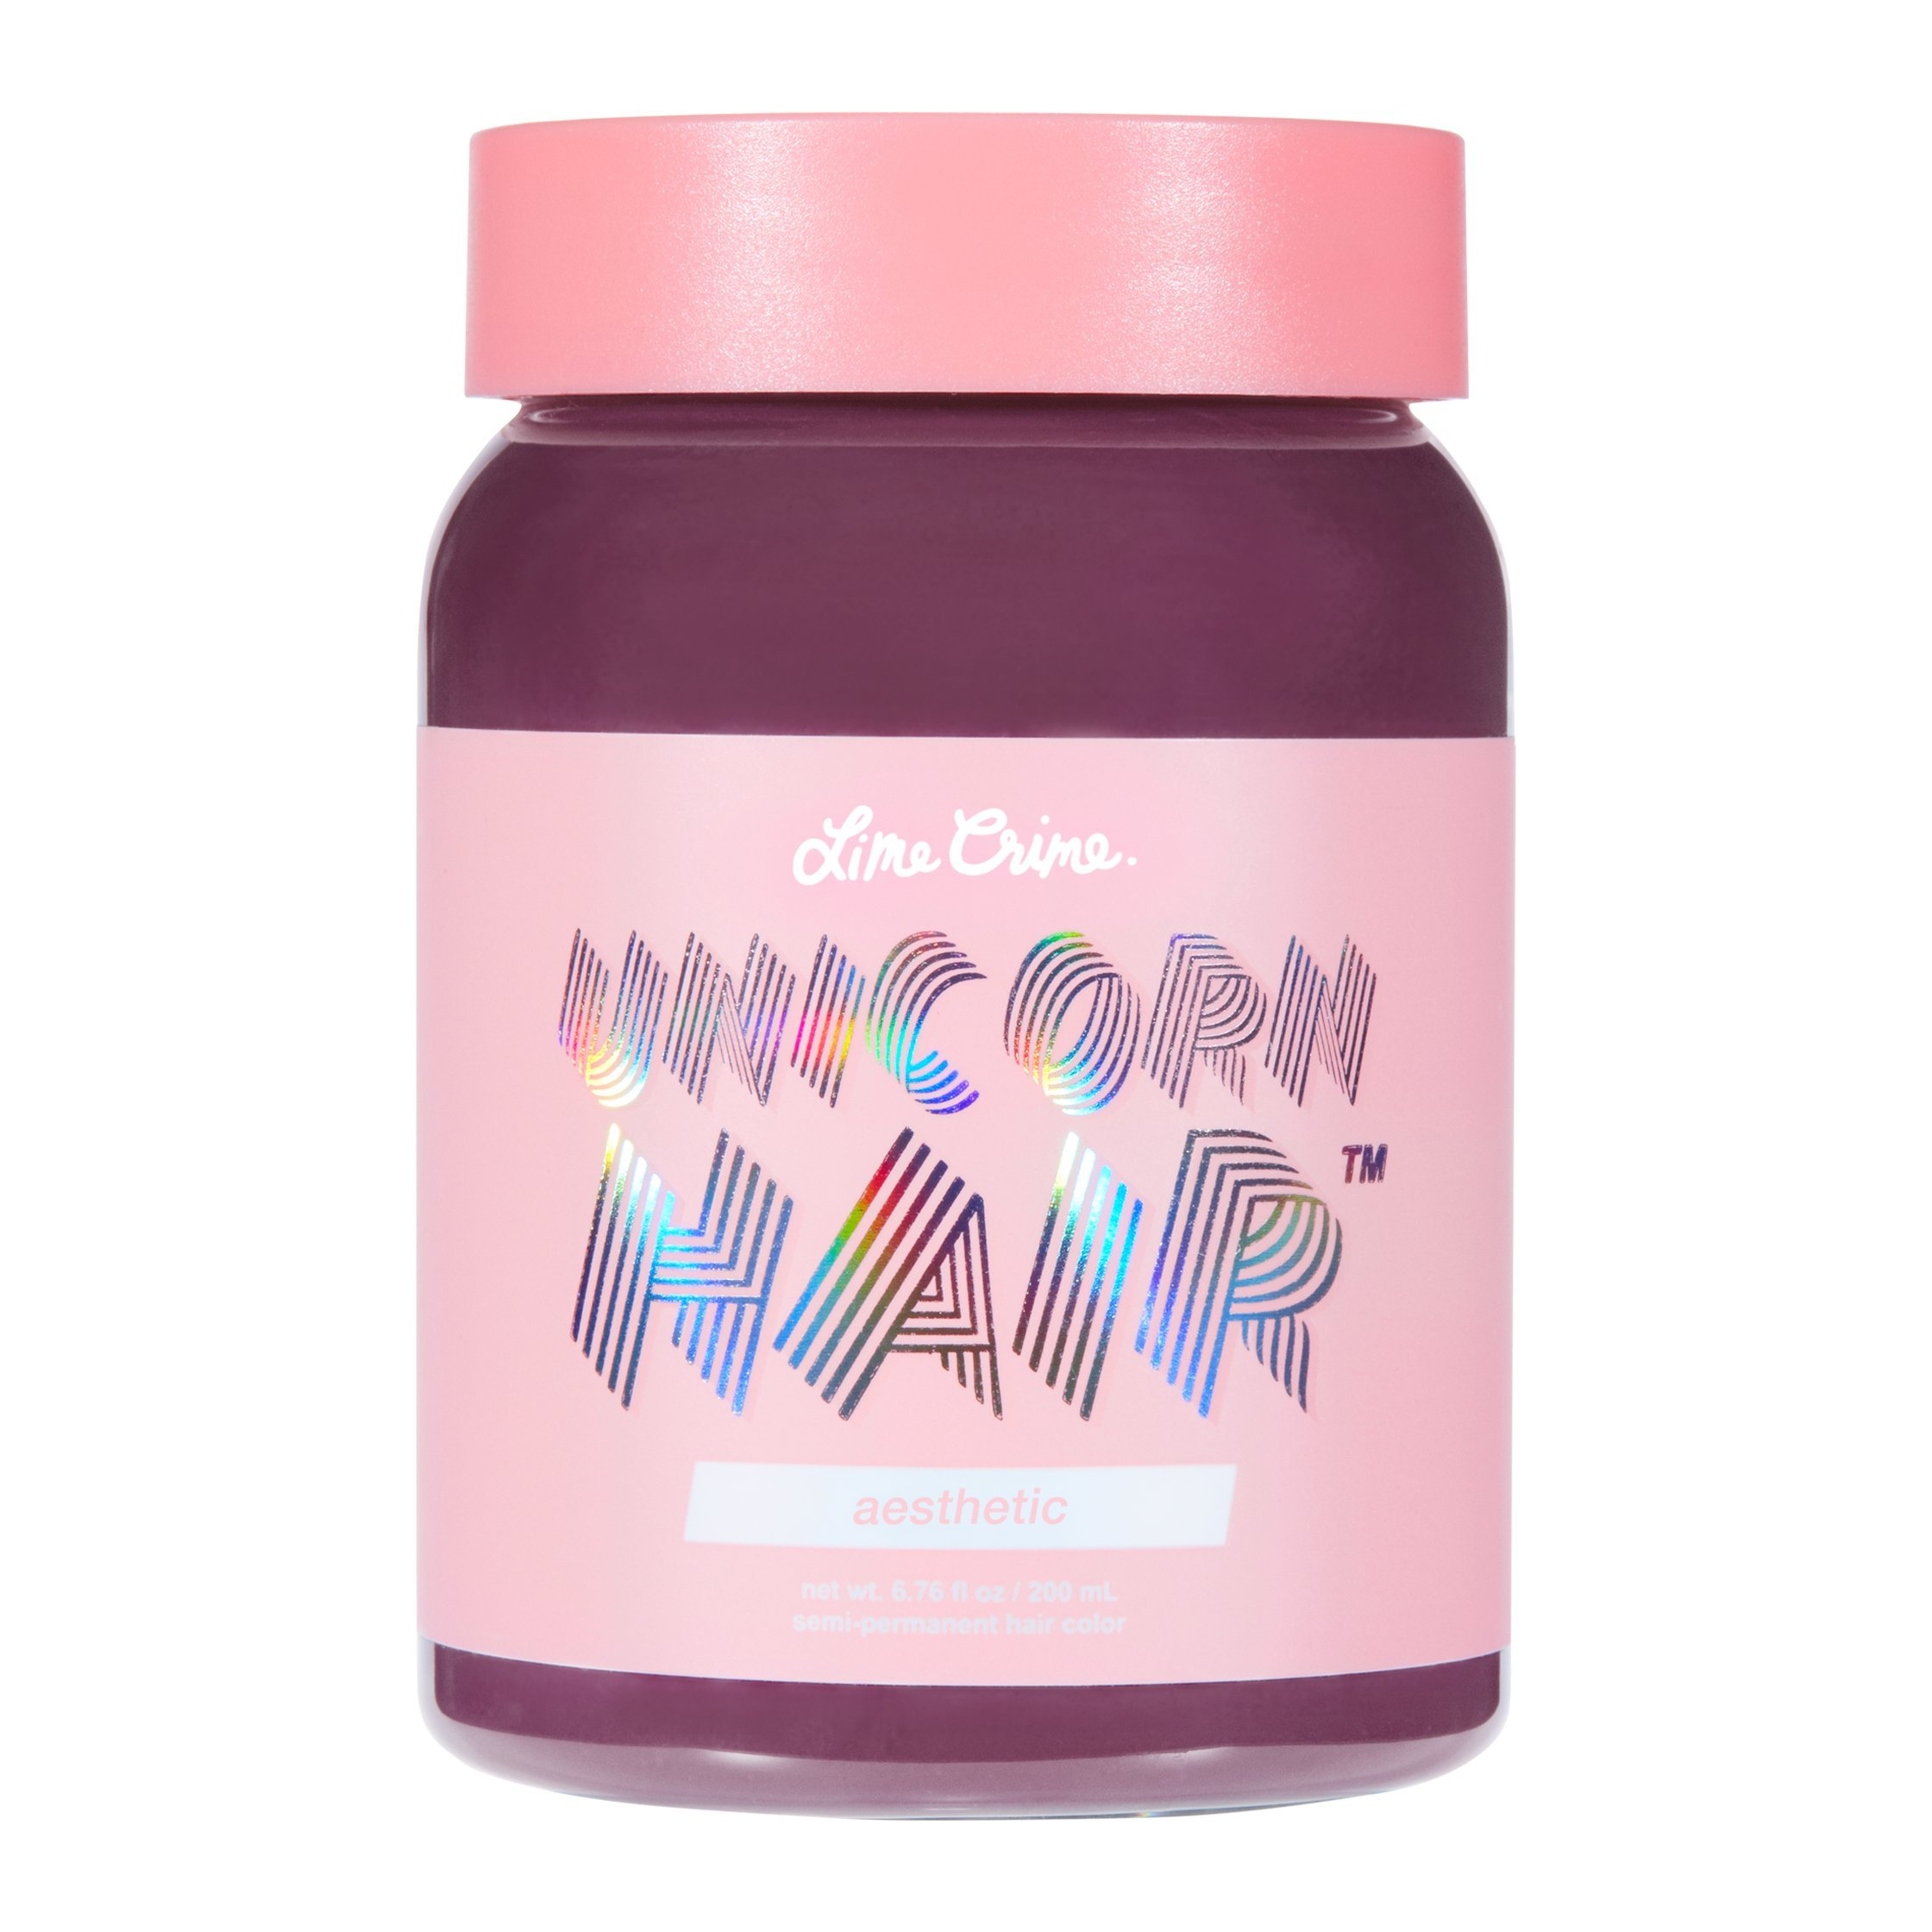 Lime Crime Unicorn Hair Aesthetic (Full Coverage). Semi Permanent Hair Dye. Mauve Vegan Hair Color (6.76 fl oz/200 mL).